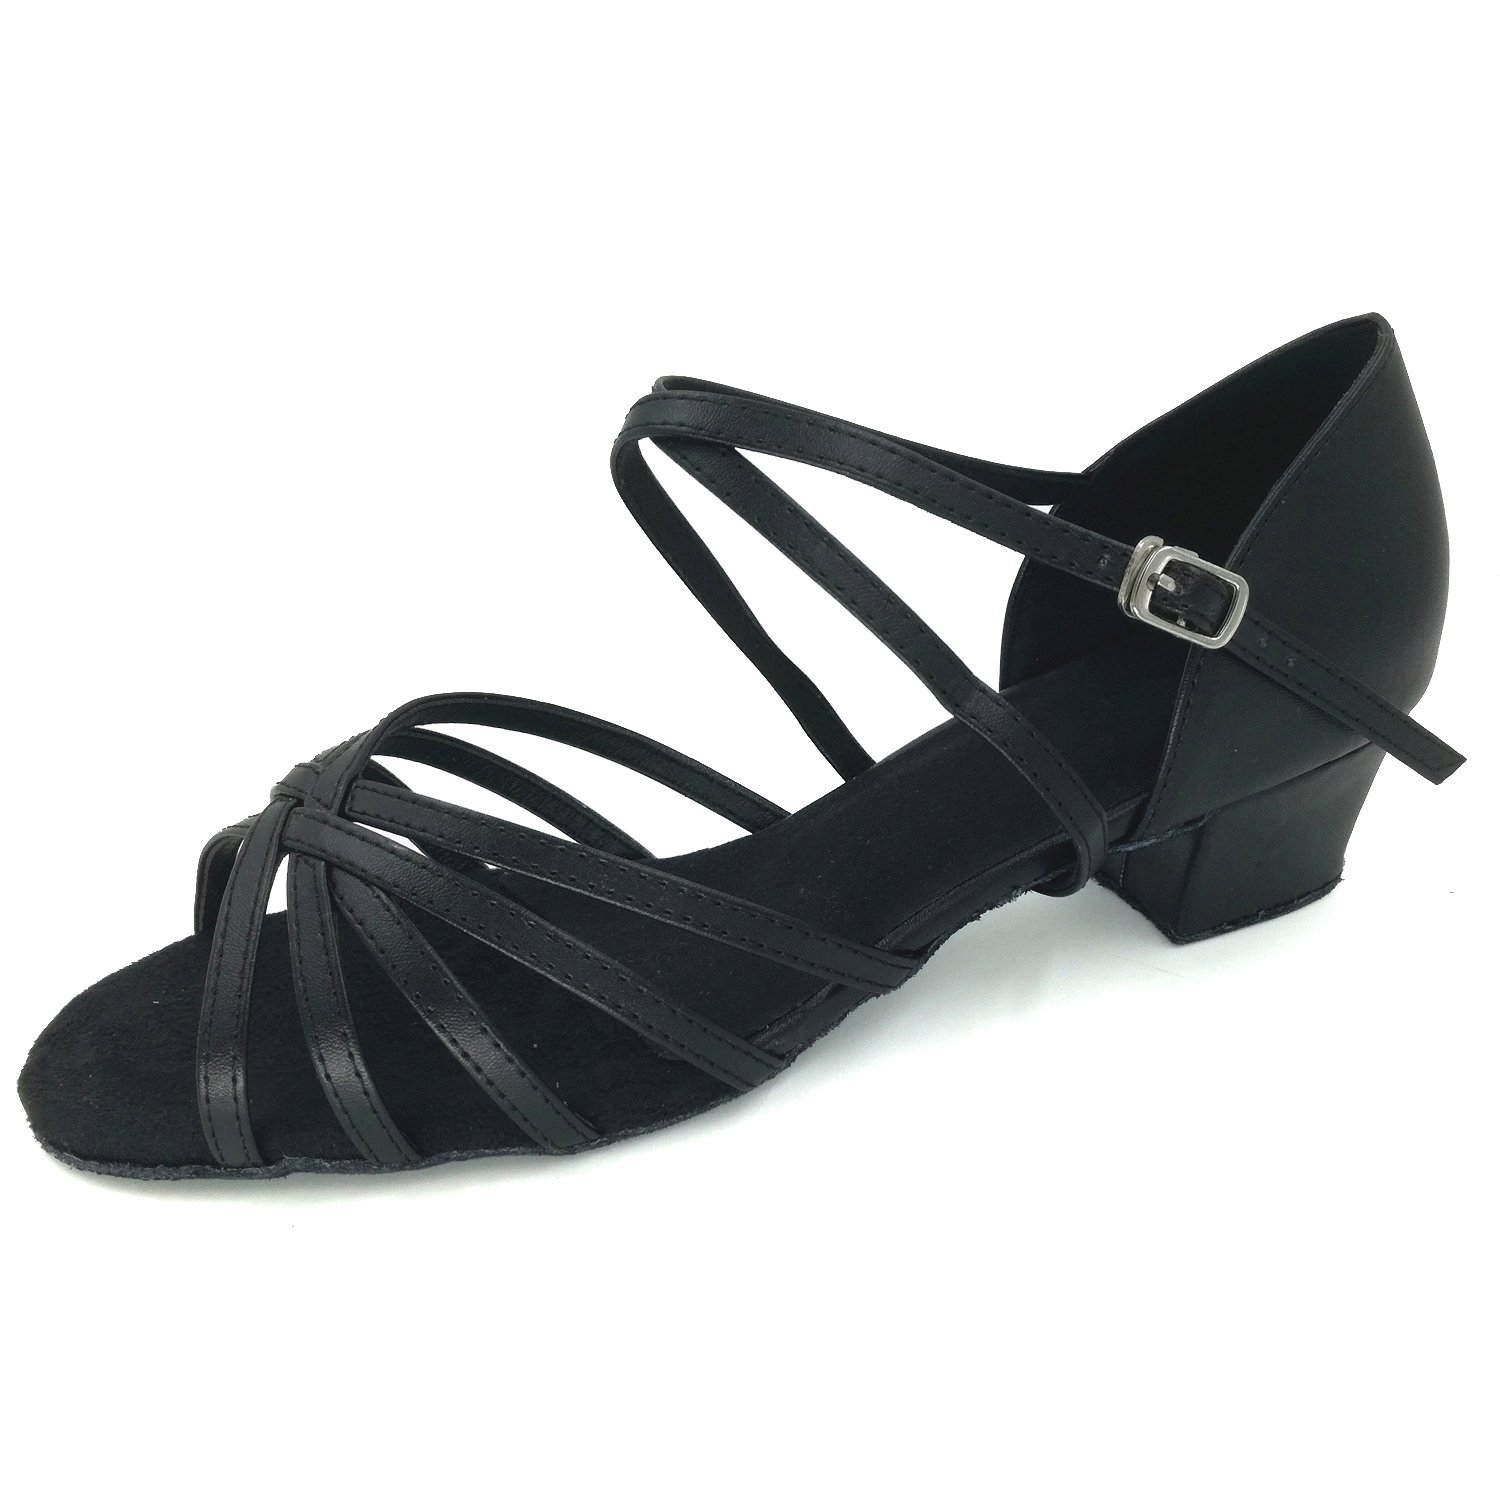 LOVELY BEAUTY Lady's Ballroom Dance Shoes for Chacha Latin Salsa Rumba Practice B076CPLBDQ 8.5 B(M) US Black